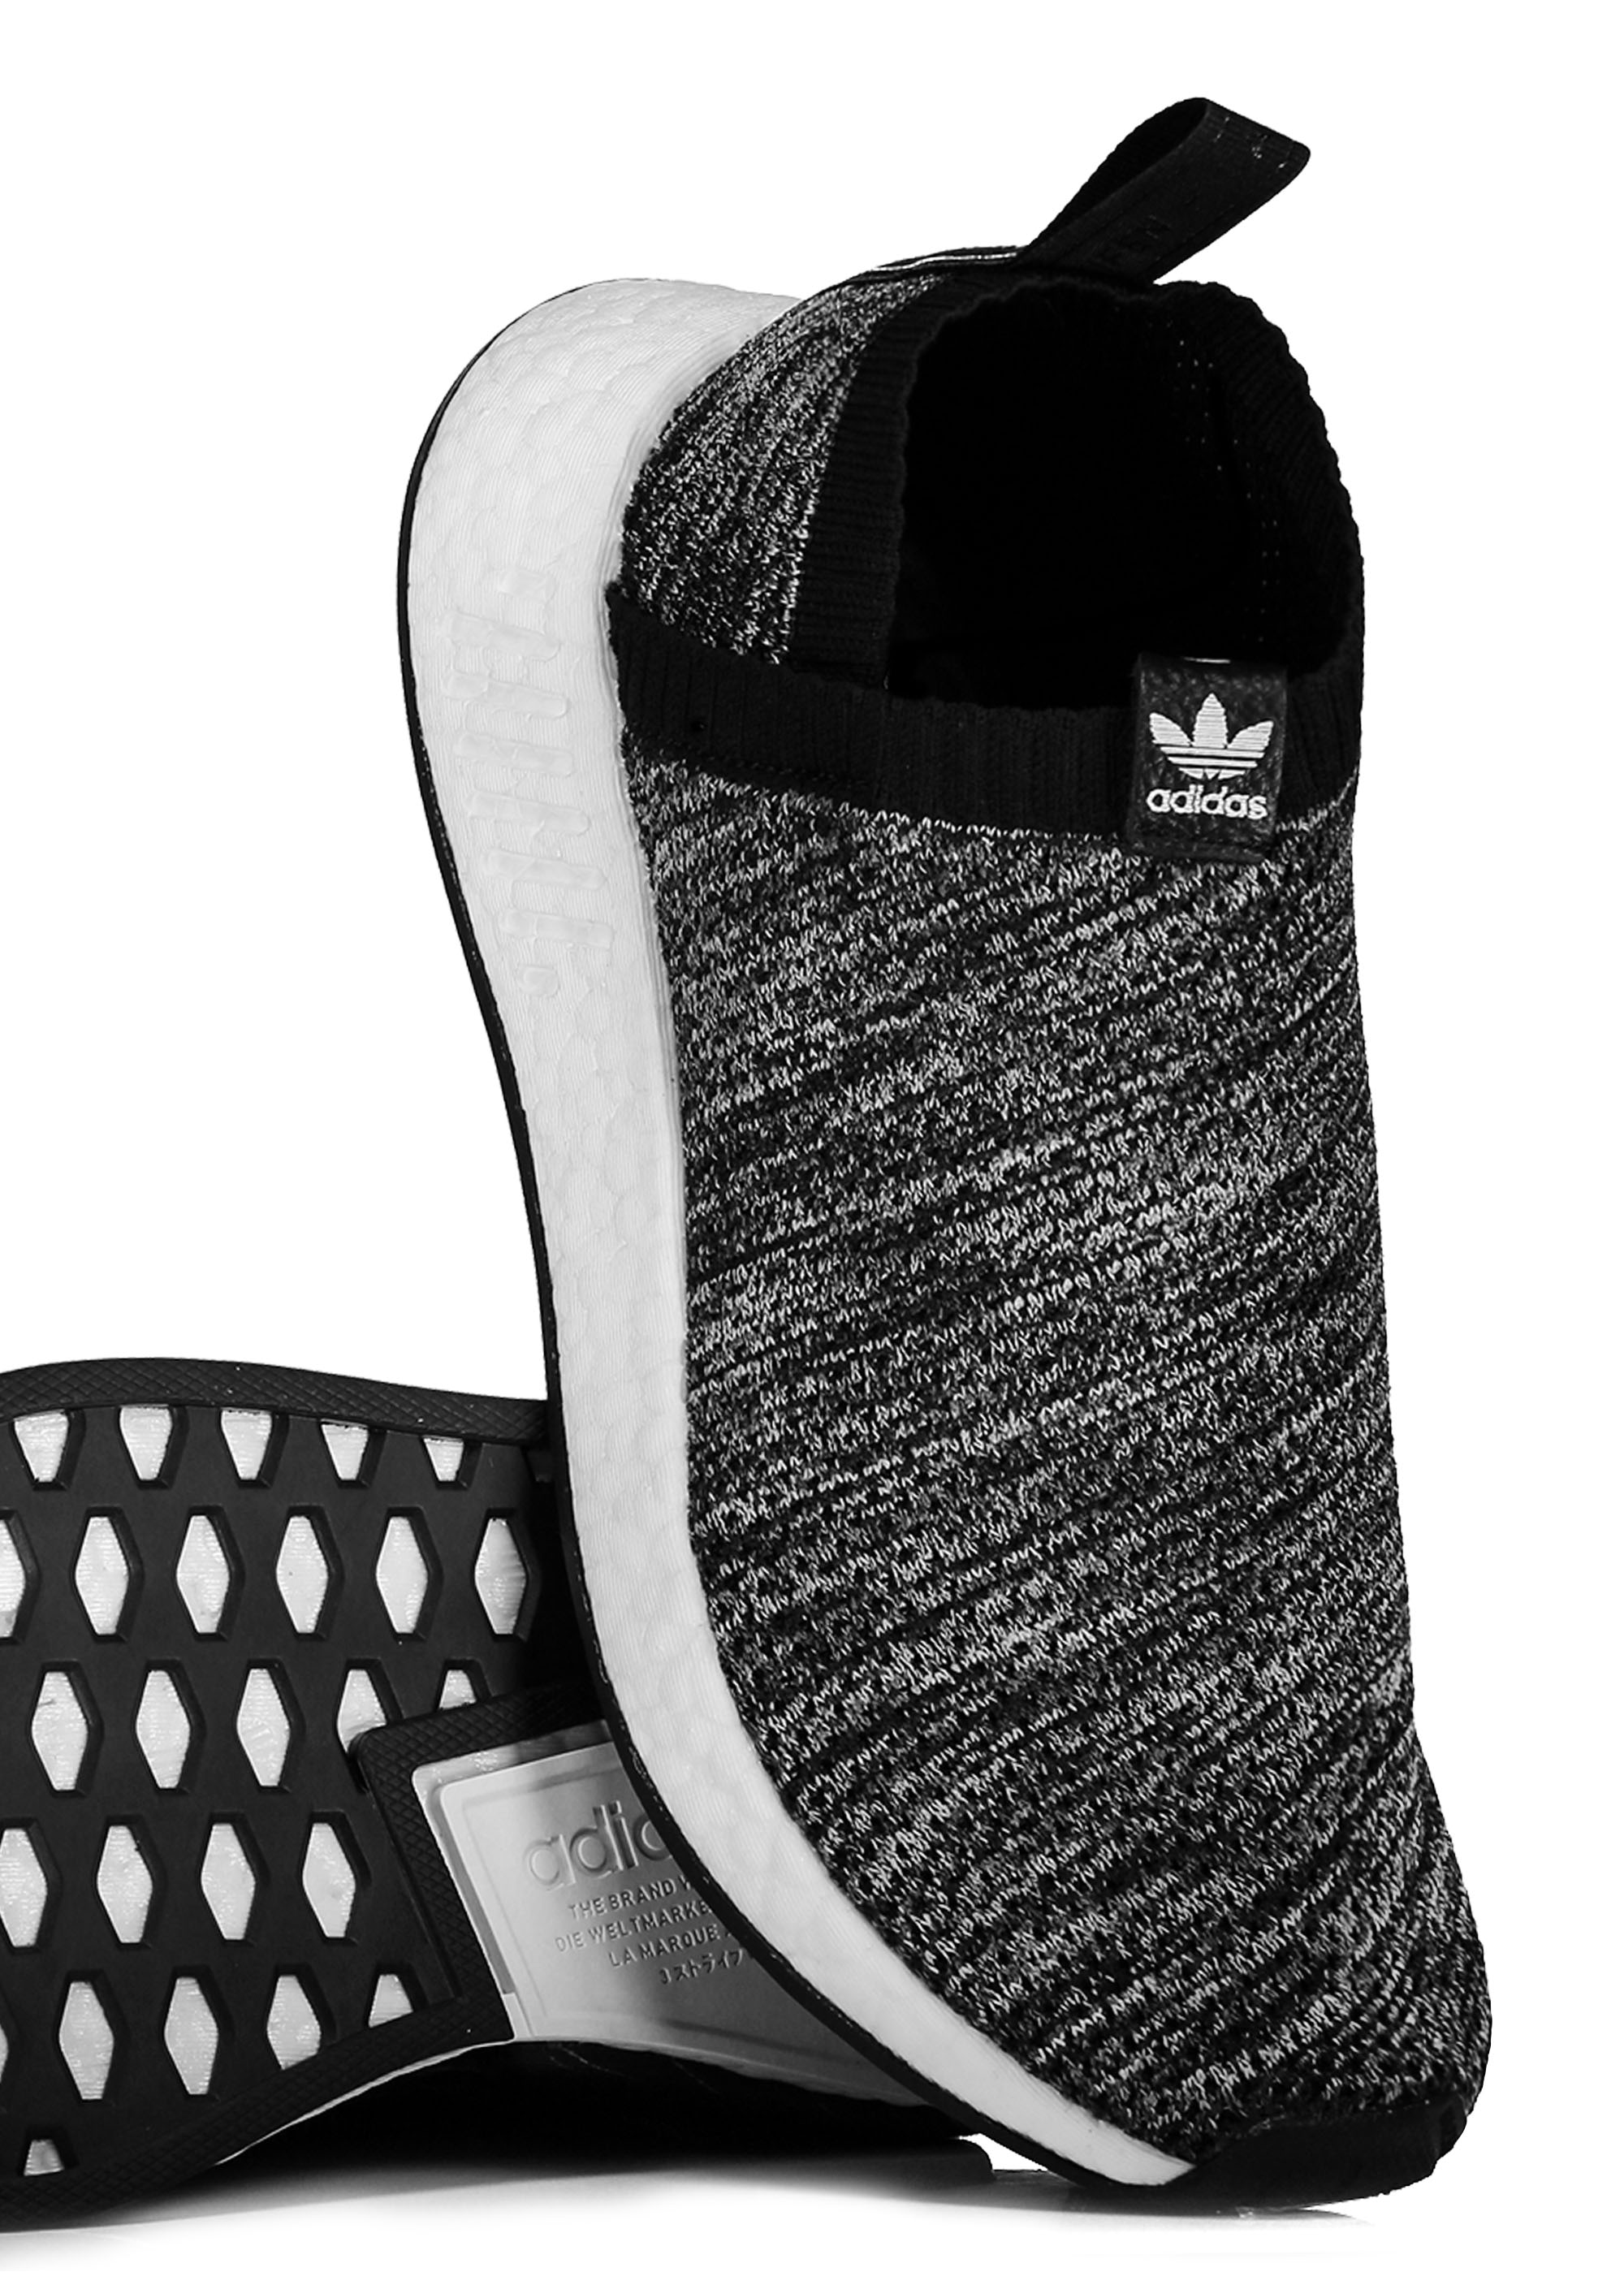 557b715f80b82 adidas Originals Footwear United Arrows   Sons NMD CS2 PK UAS ...